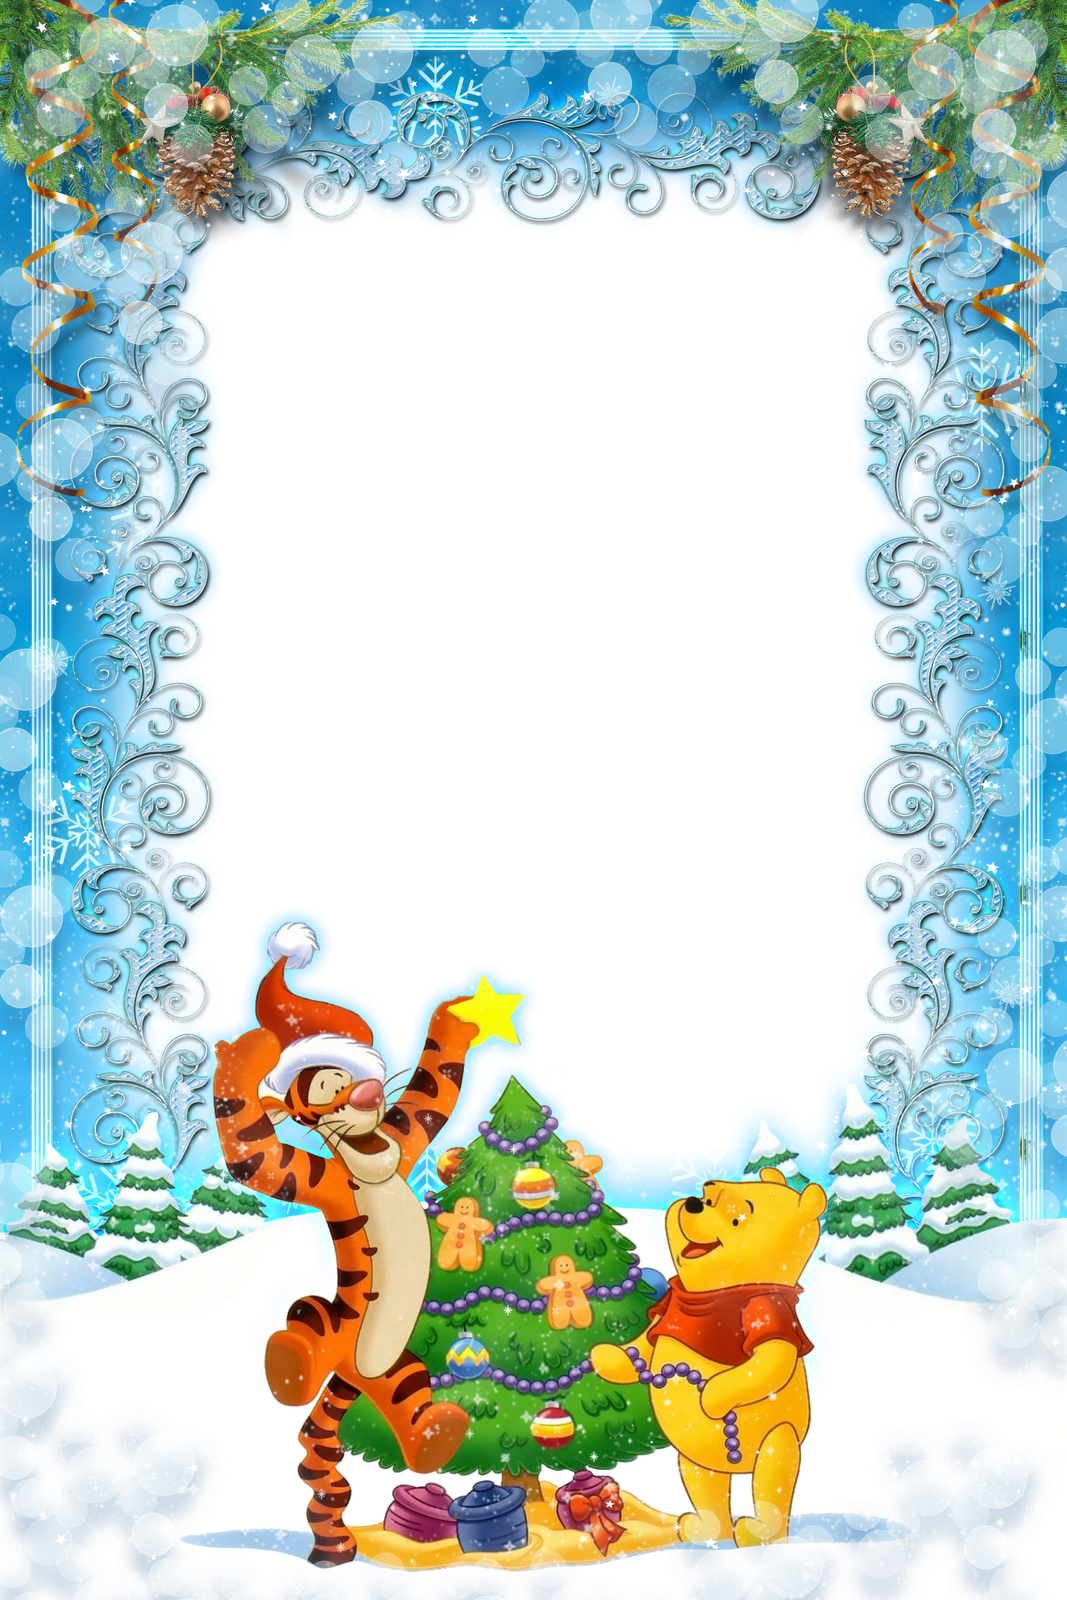 Christmas Top Border Png.Winnie The Pooh And Tigger Putting The Star On The Top Of